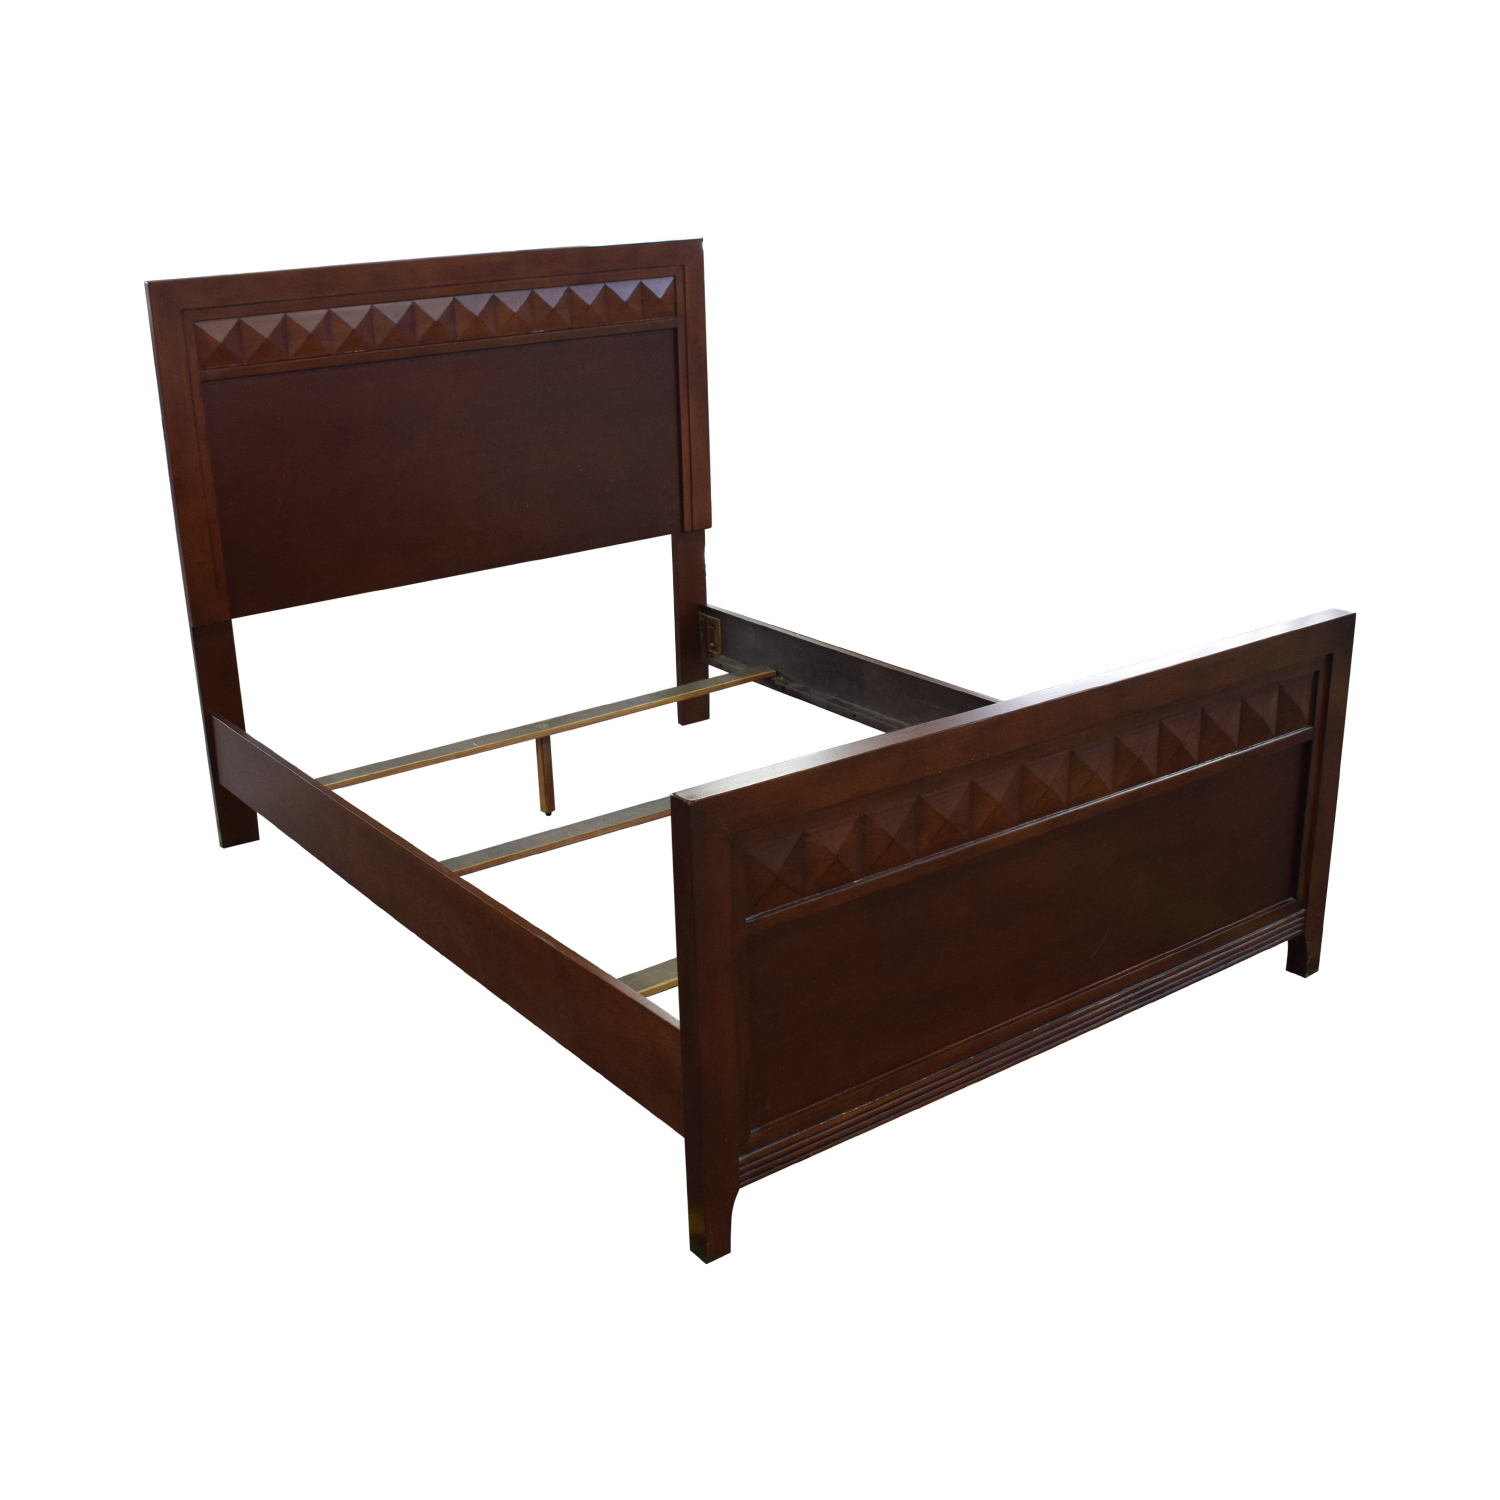 Wood Full Bed Frame coupon